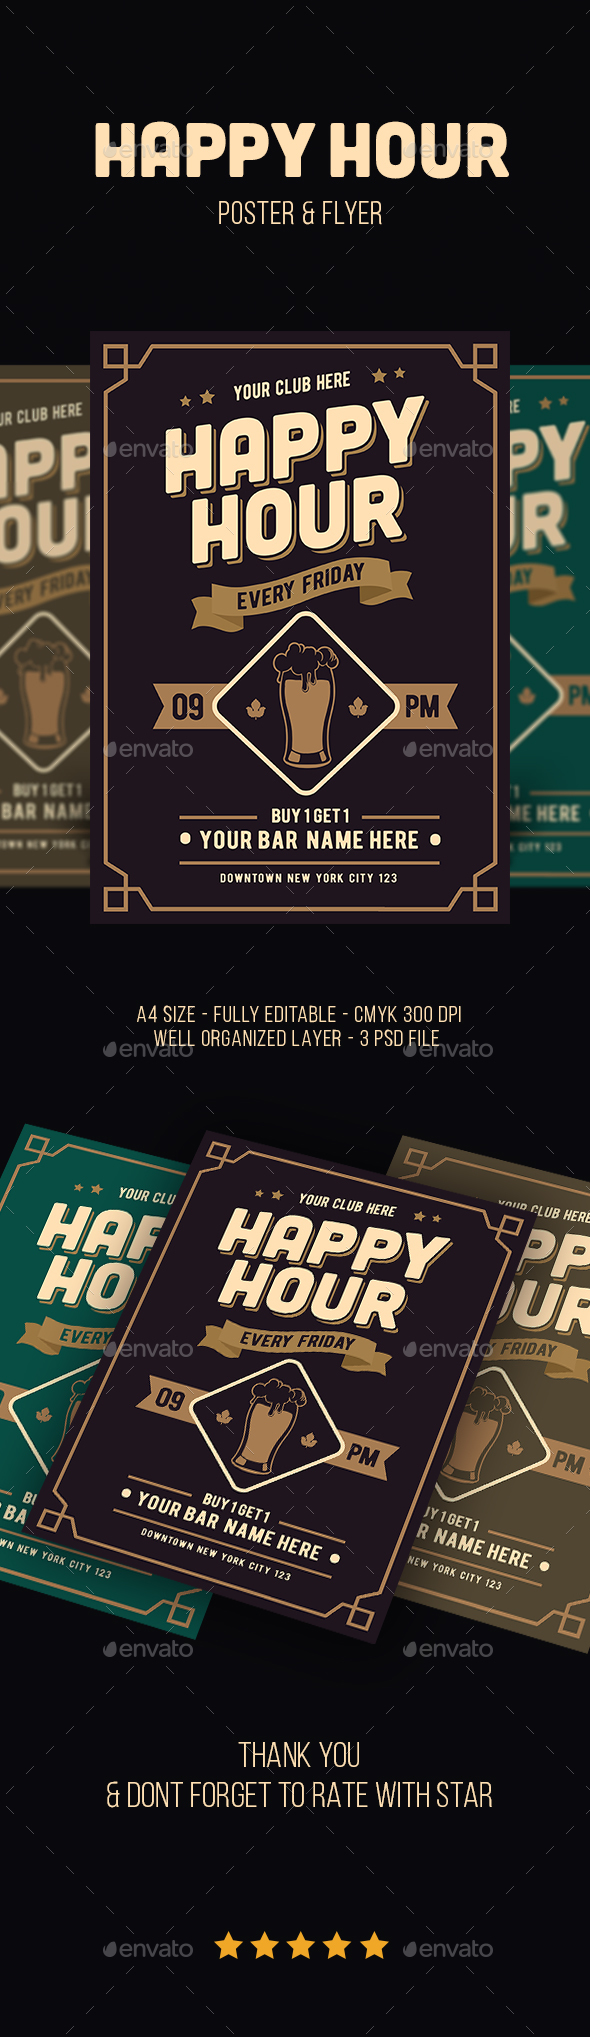 Classic Happy Hour Drinks Flyer - Flyers Print Templates